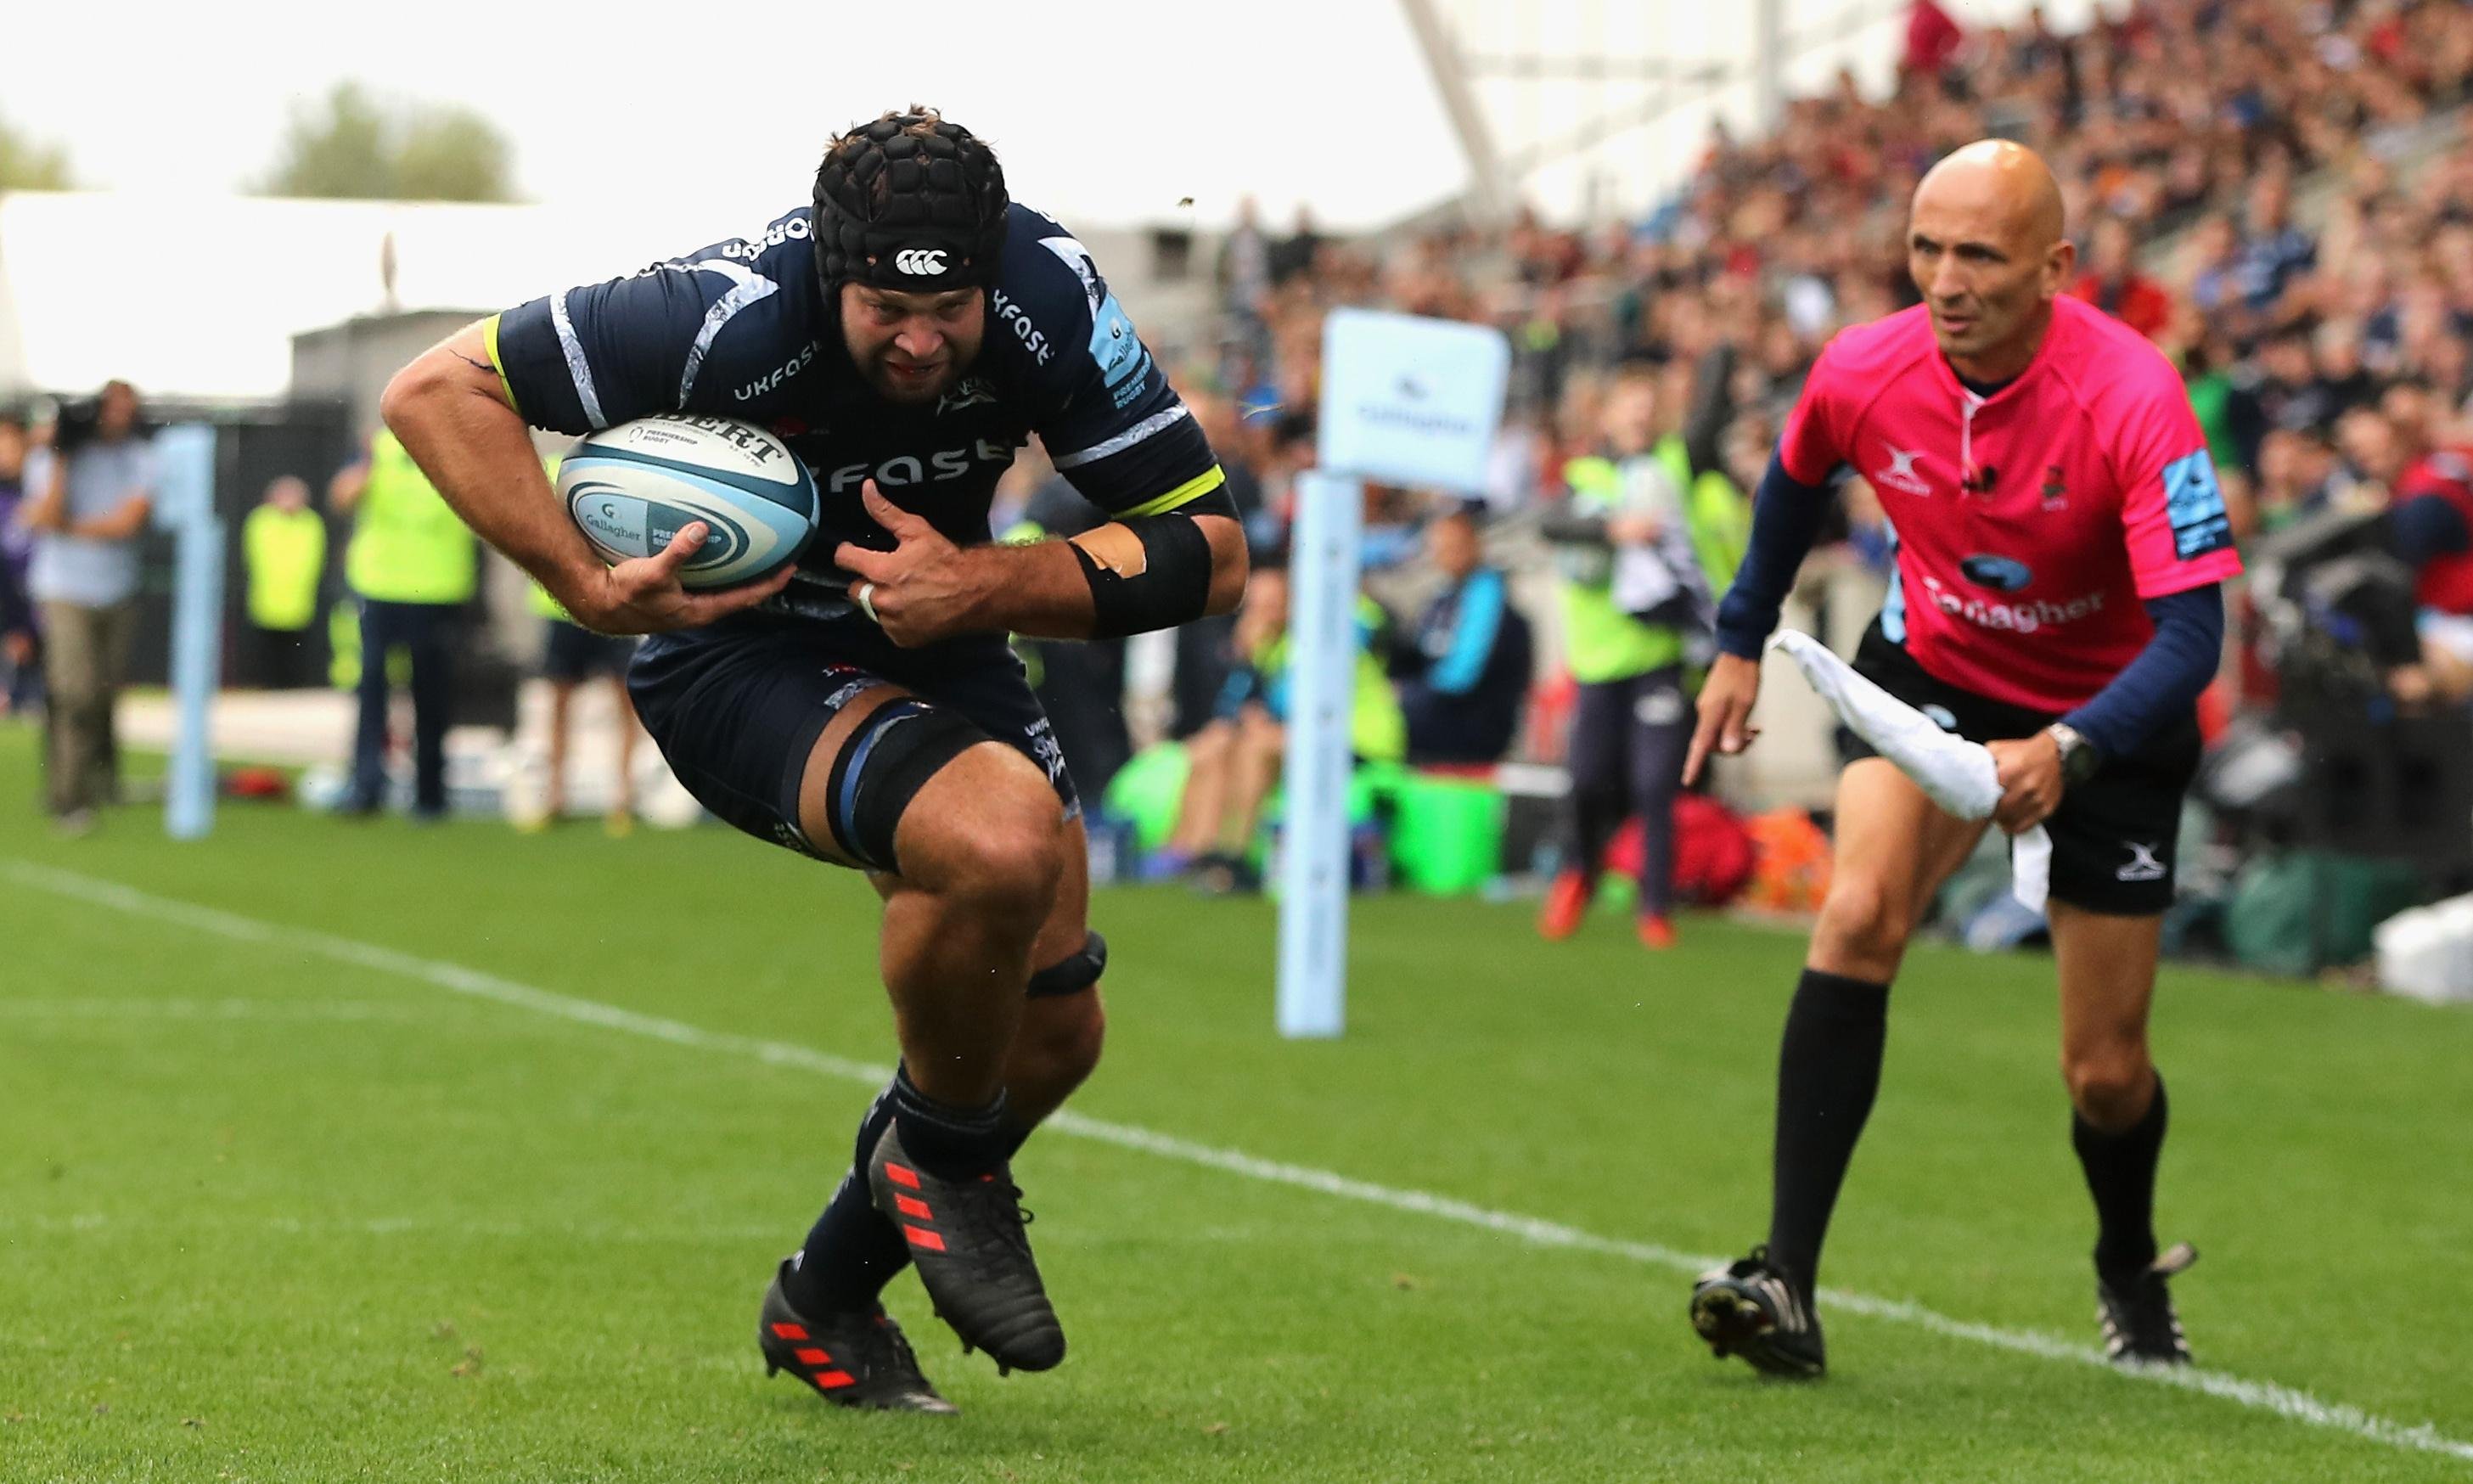 Josh Beaumont and AJ MacGinty steer Sale to nervy win over Worcester